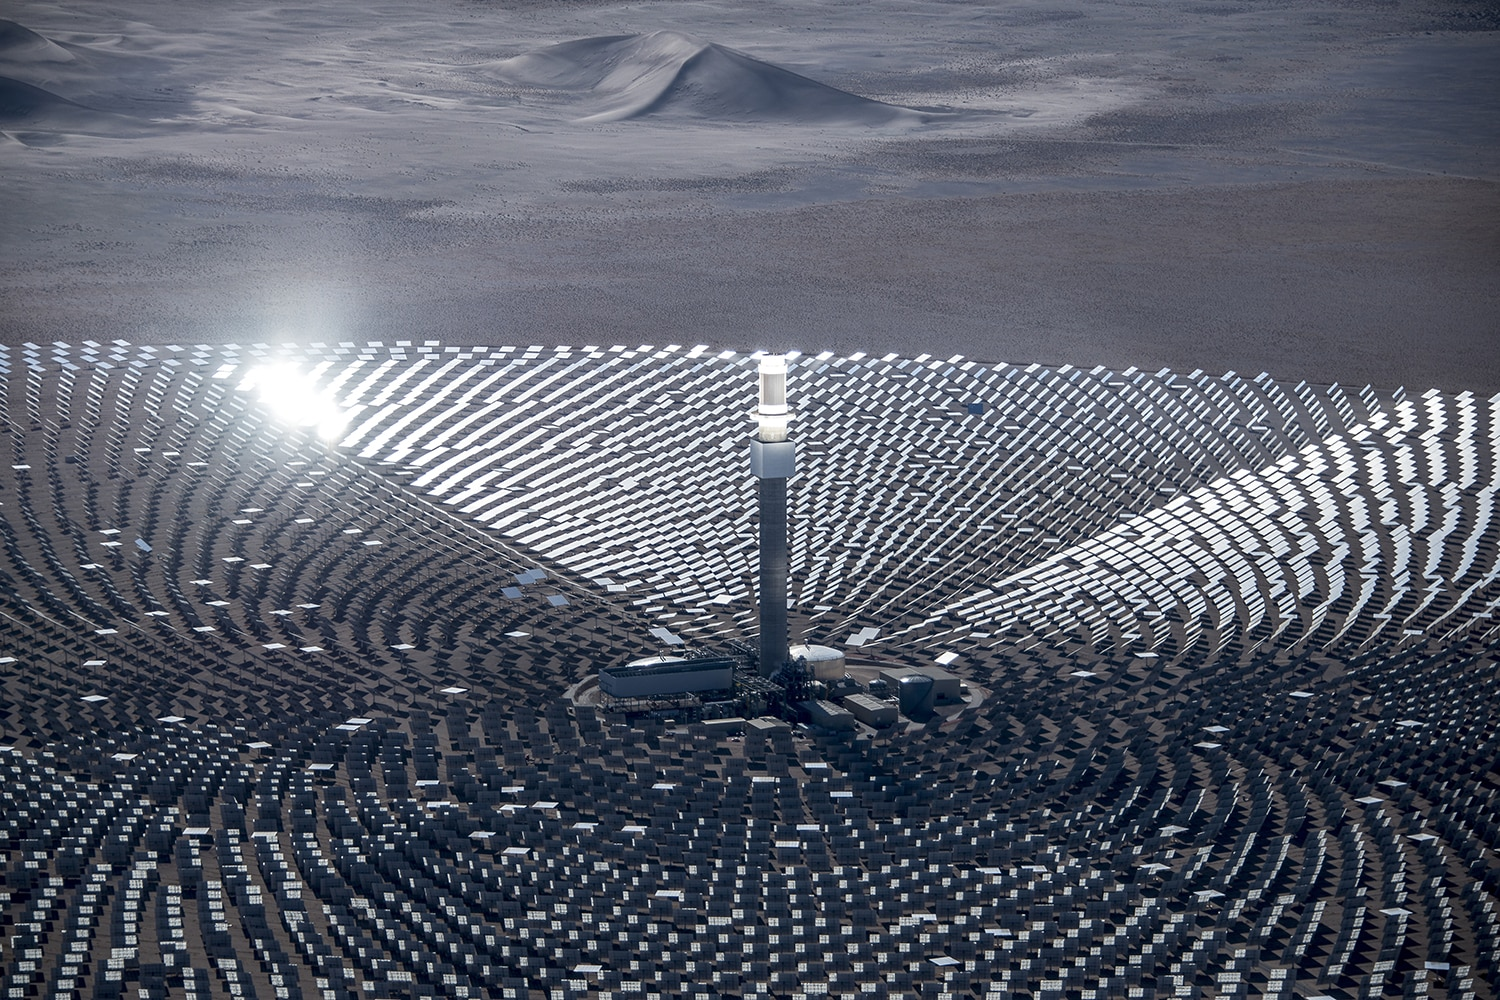 10,347 mirrors surrounding tall tower with illuminated top chamber (Courtesy of SolarReserve)